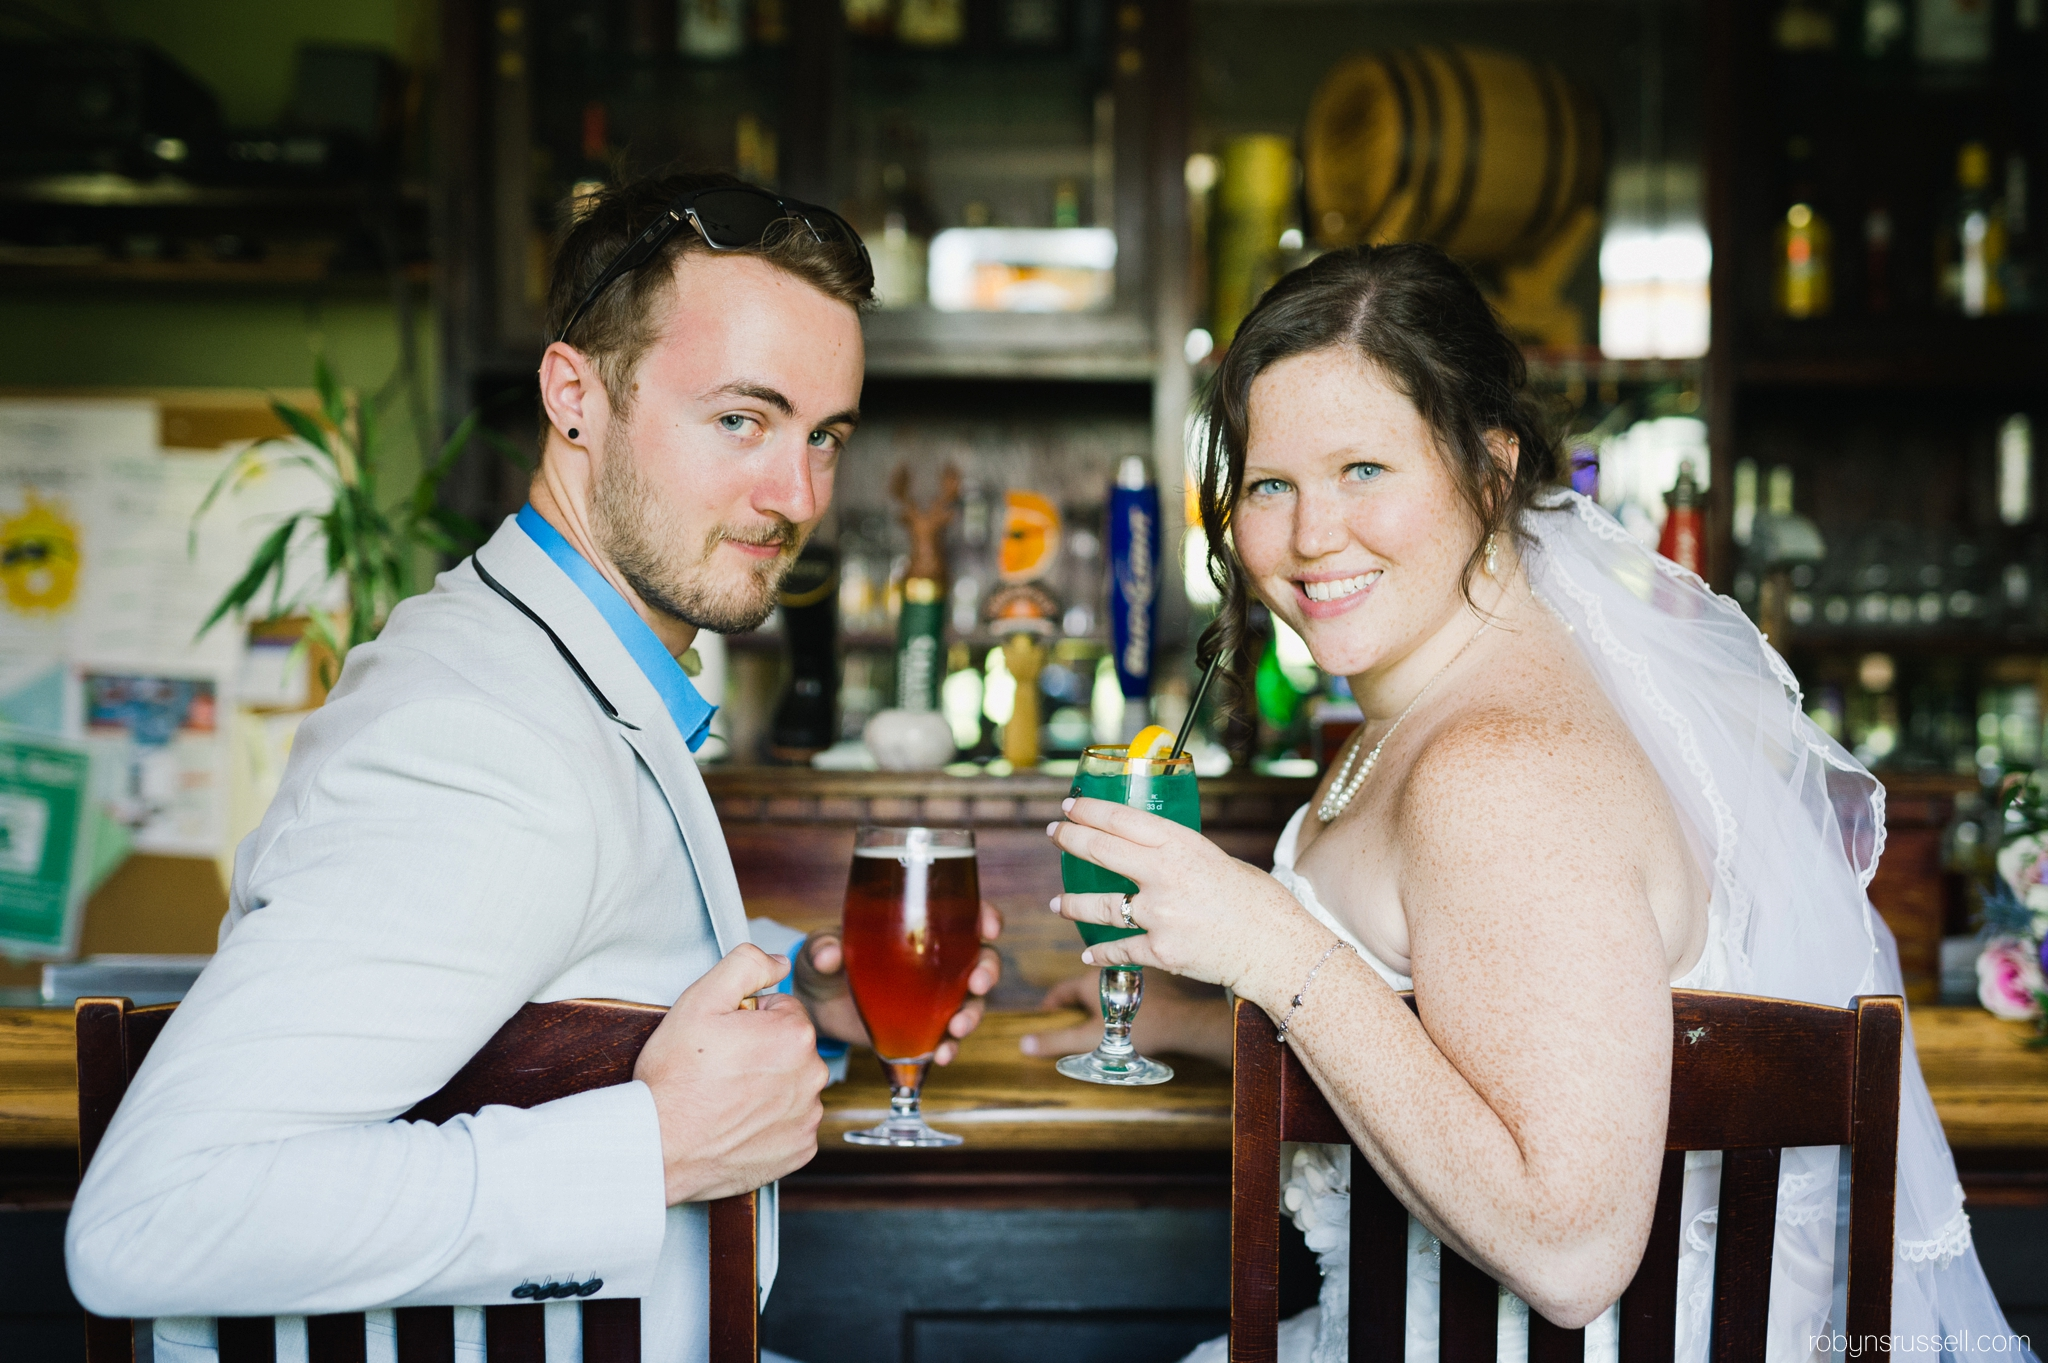 39-bride-and-groom-having-a-drink-on-wedding-day.jpg